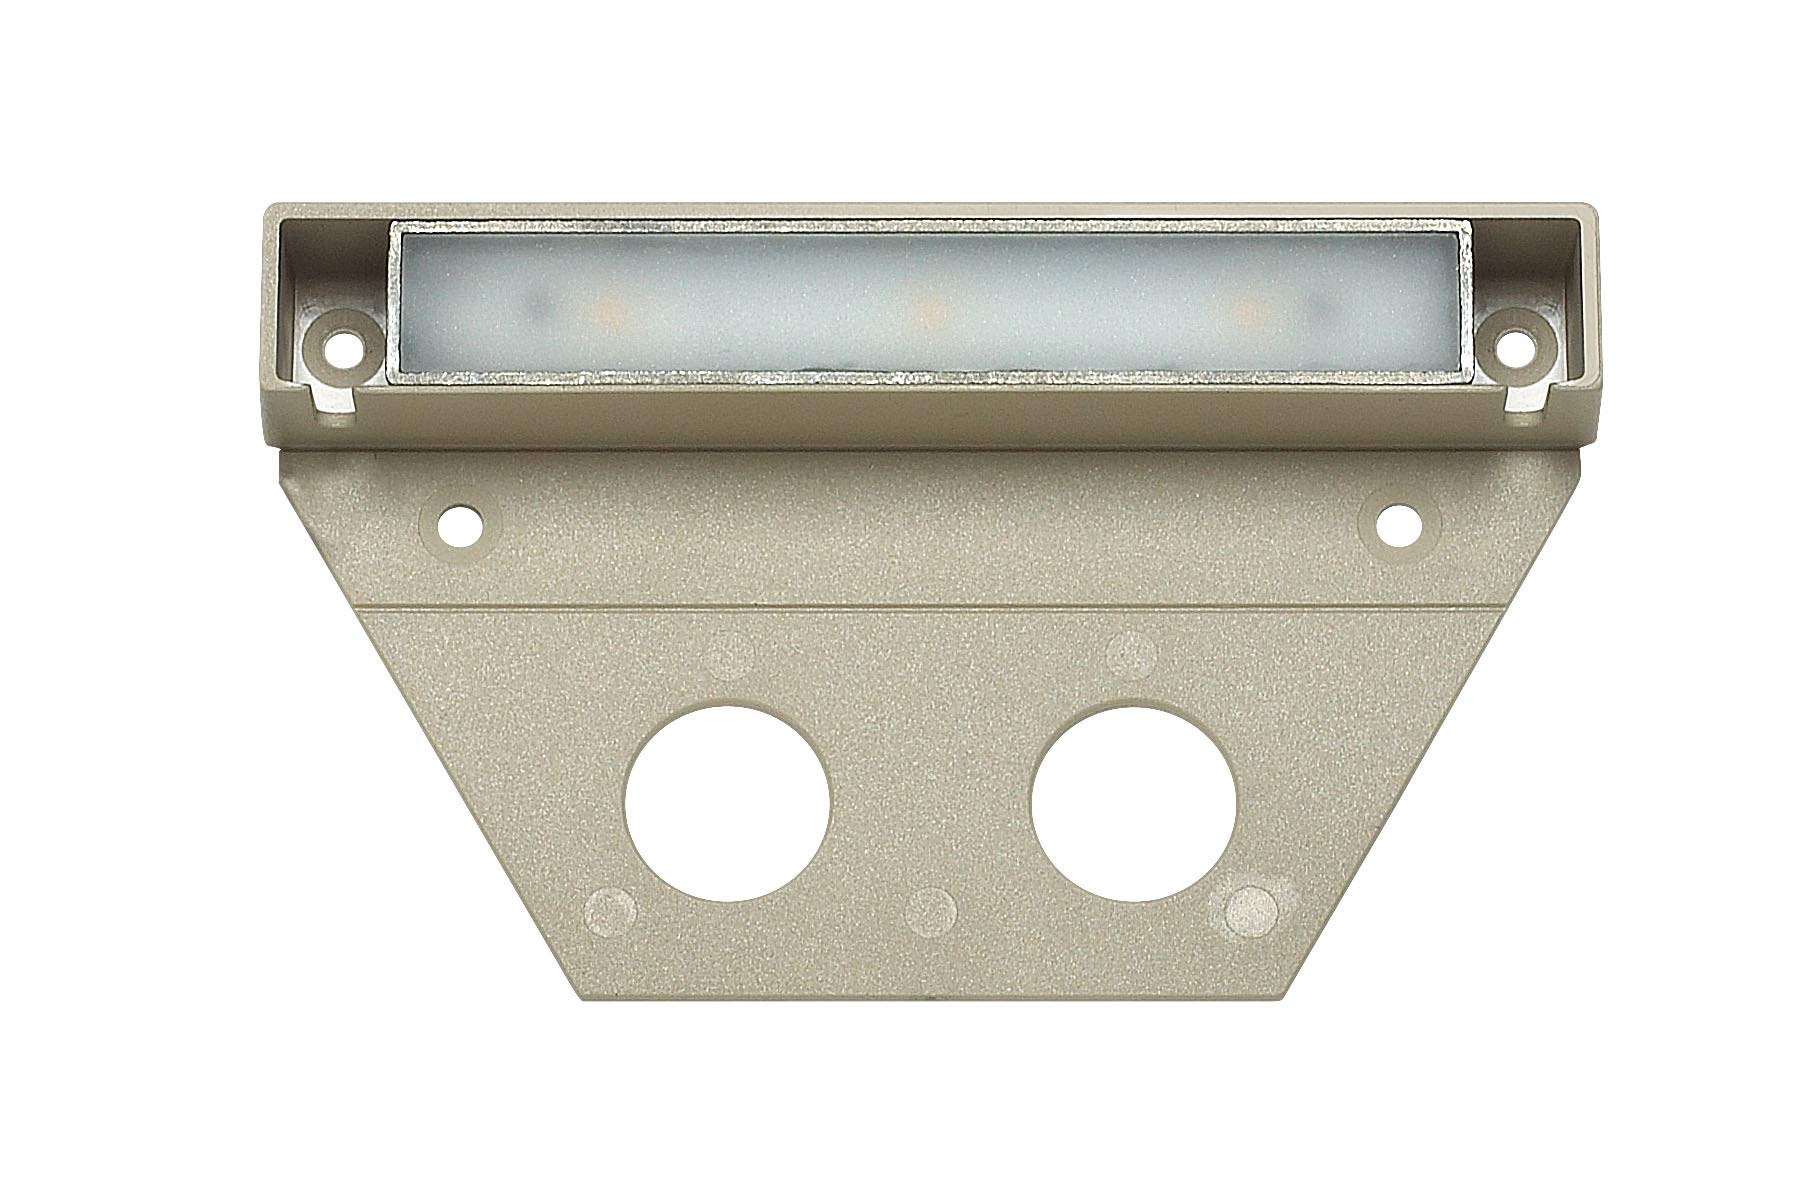 Hinkley Landscape Lighting NUVI Landscape Deck Light - Hardscape Light Highlights Important Hardscape Features and Surfaces and Increases Home Security - Medium Size, Sandstone Finish